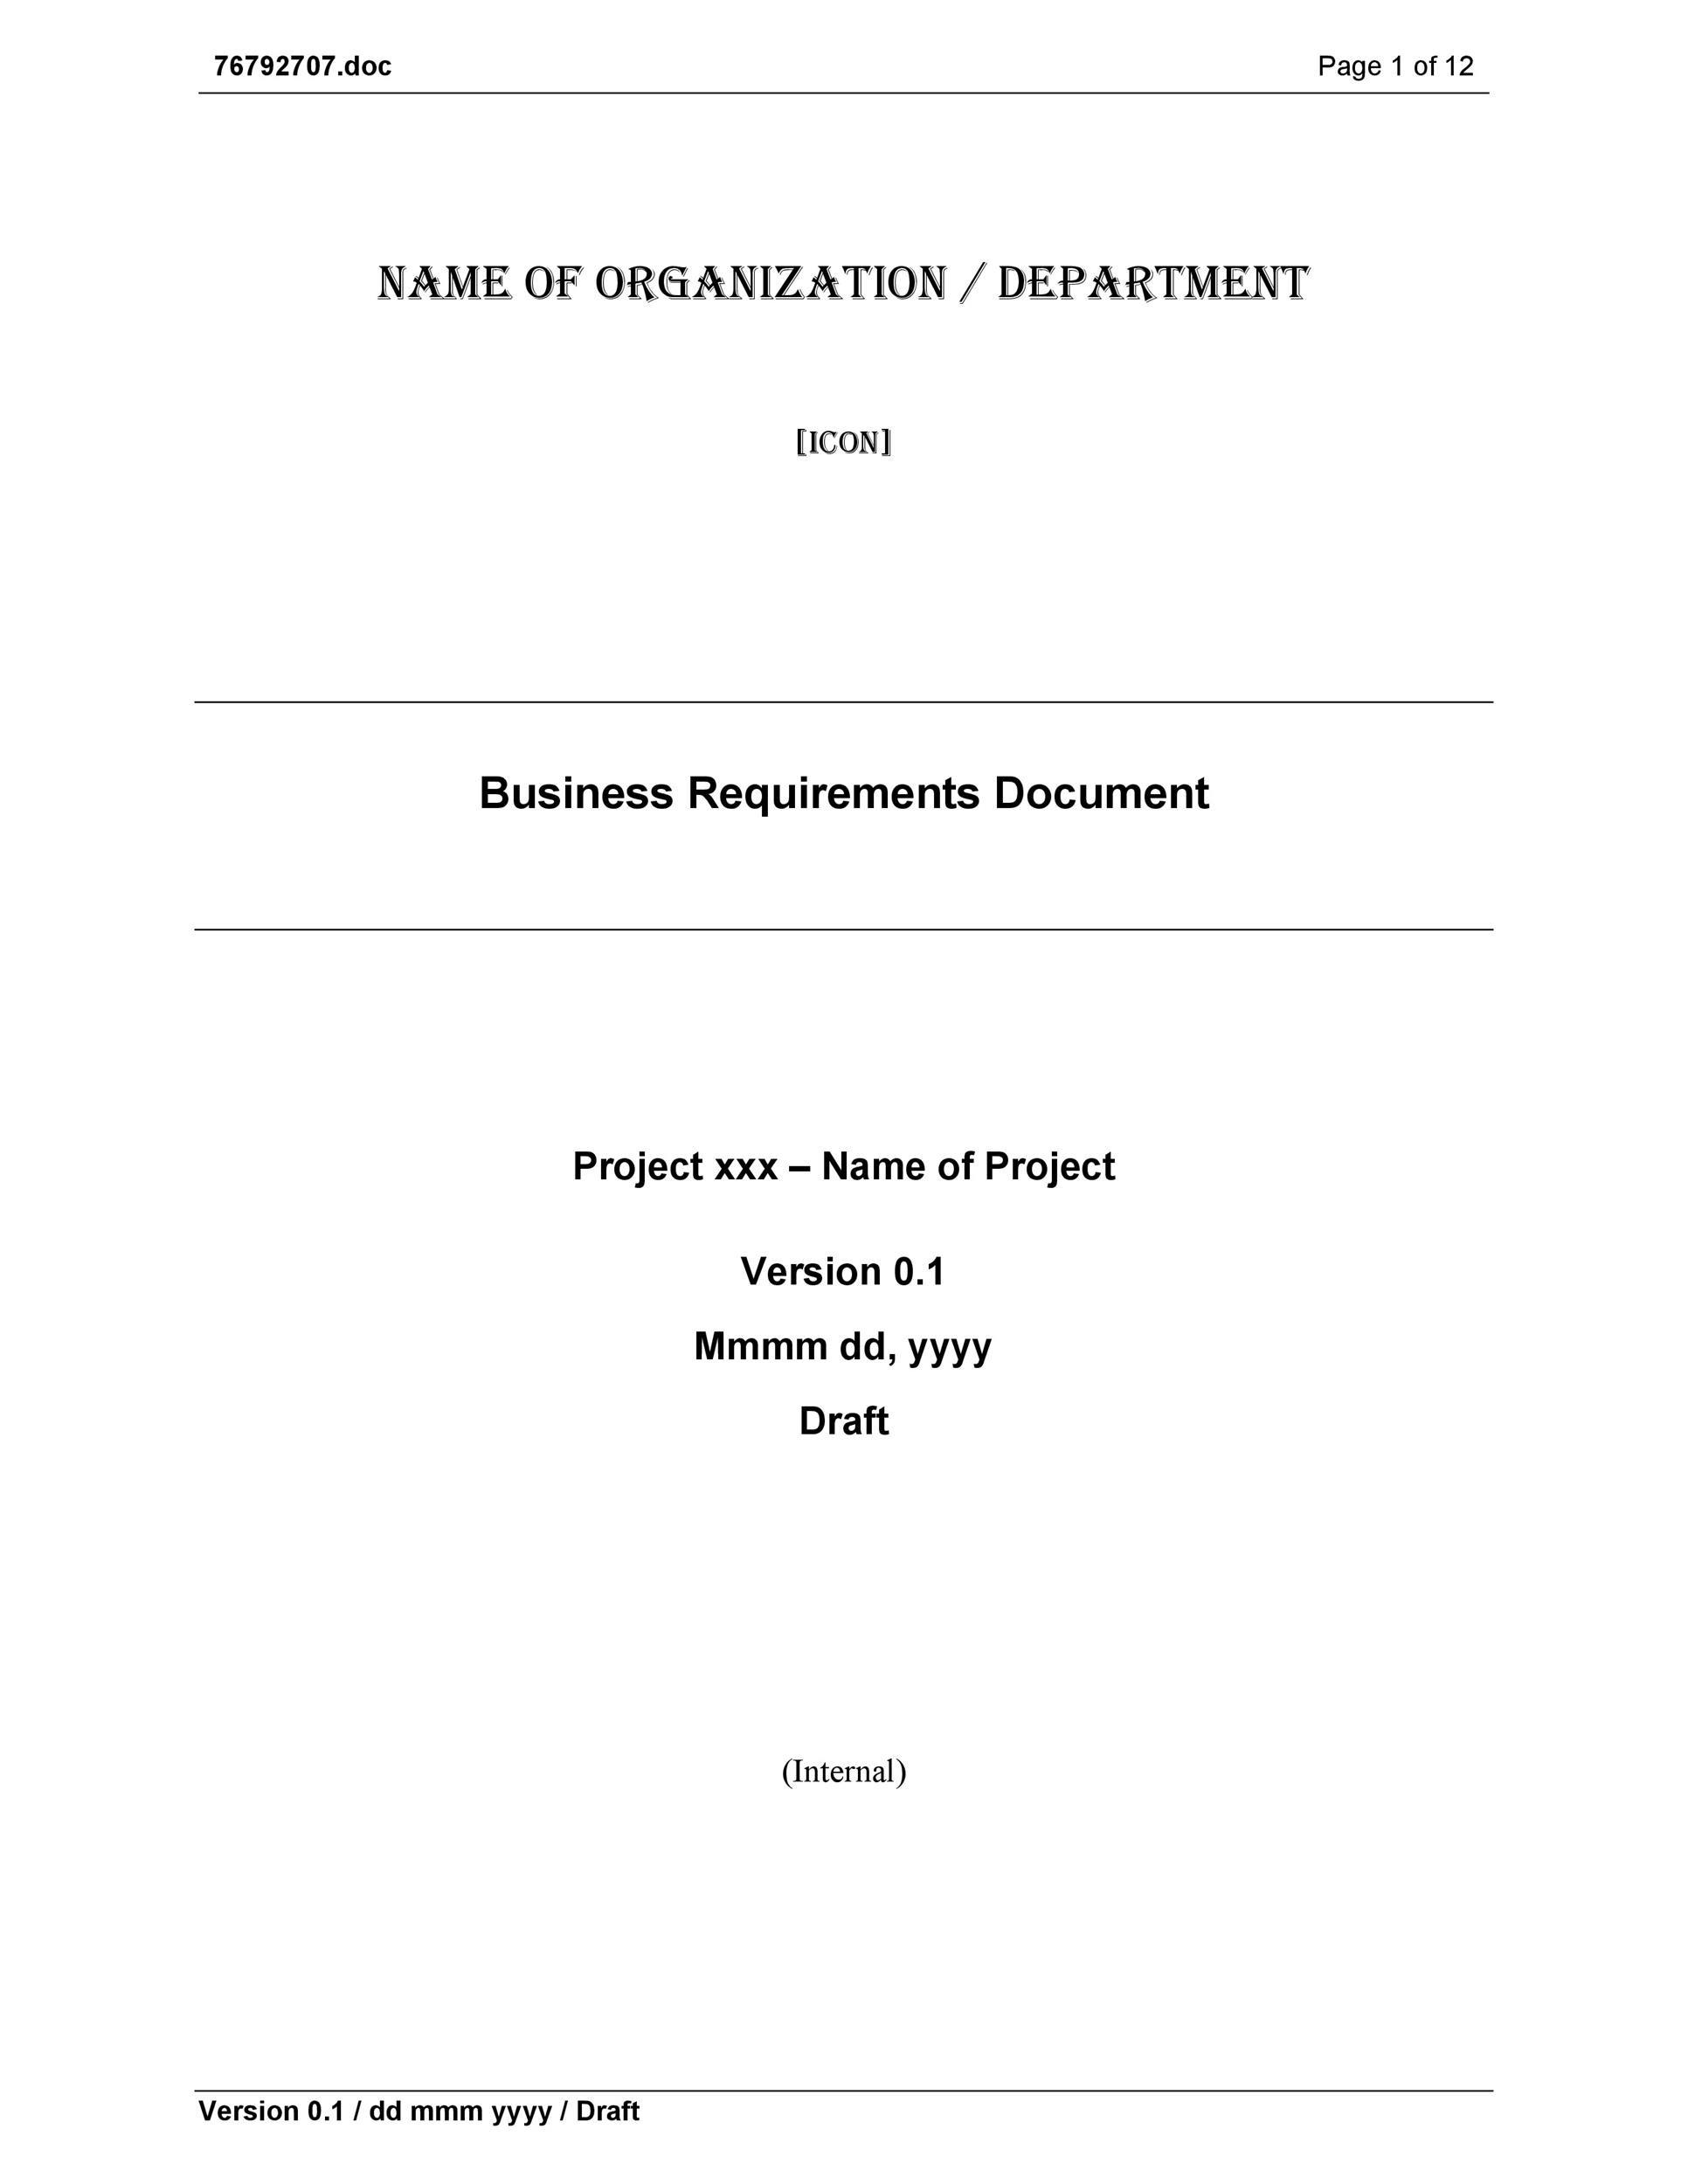 Simple Business Requirements Document Templates Template Lab - Requirements document template